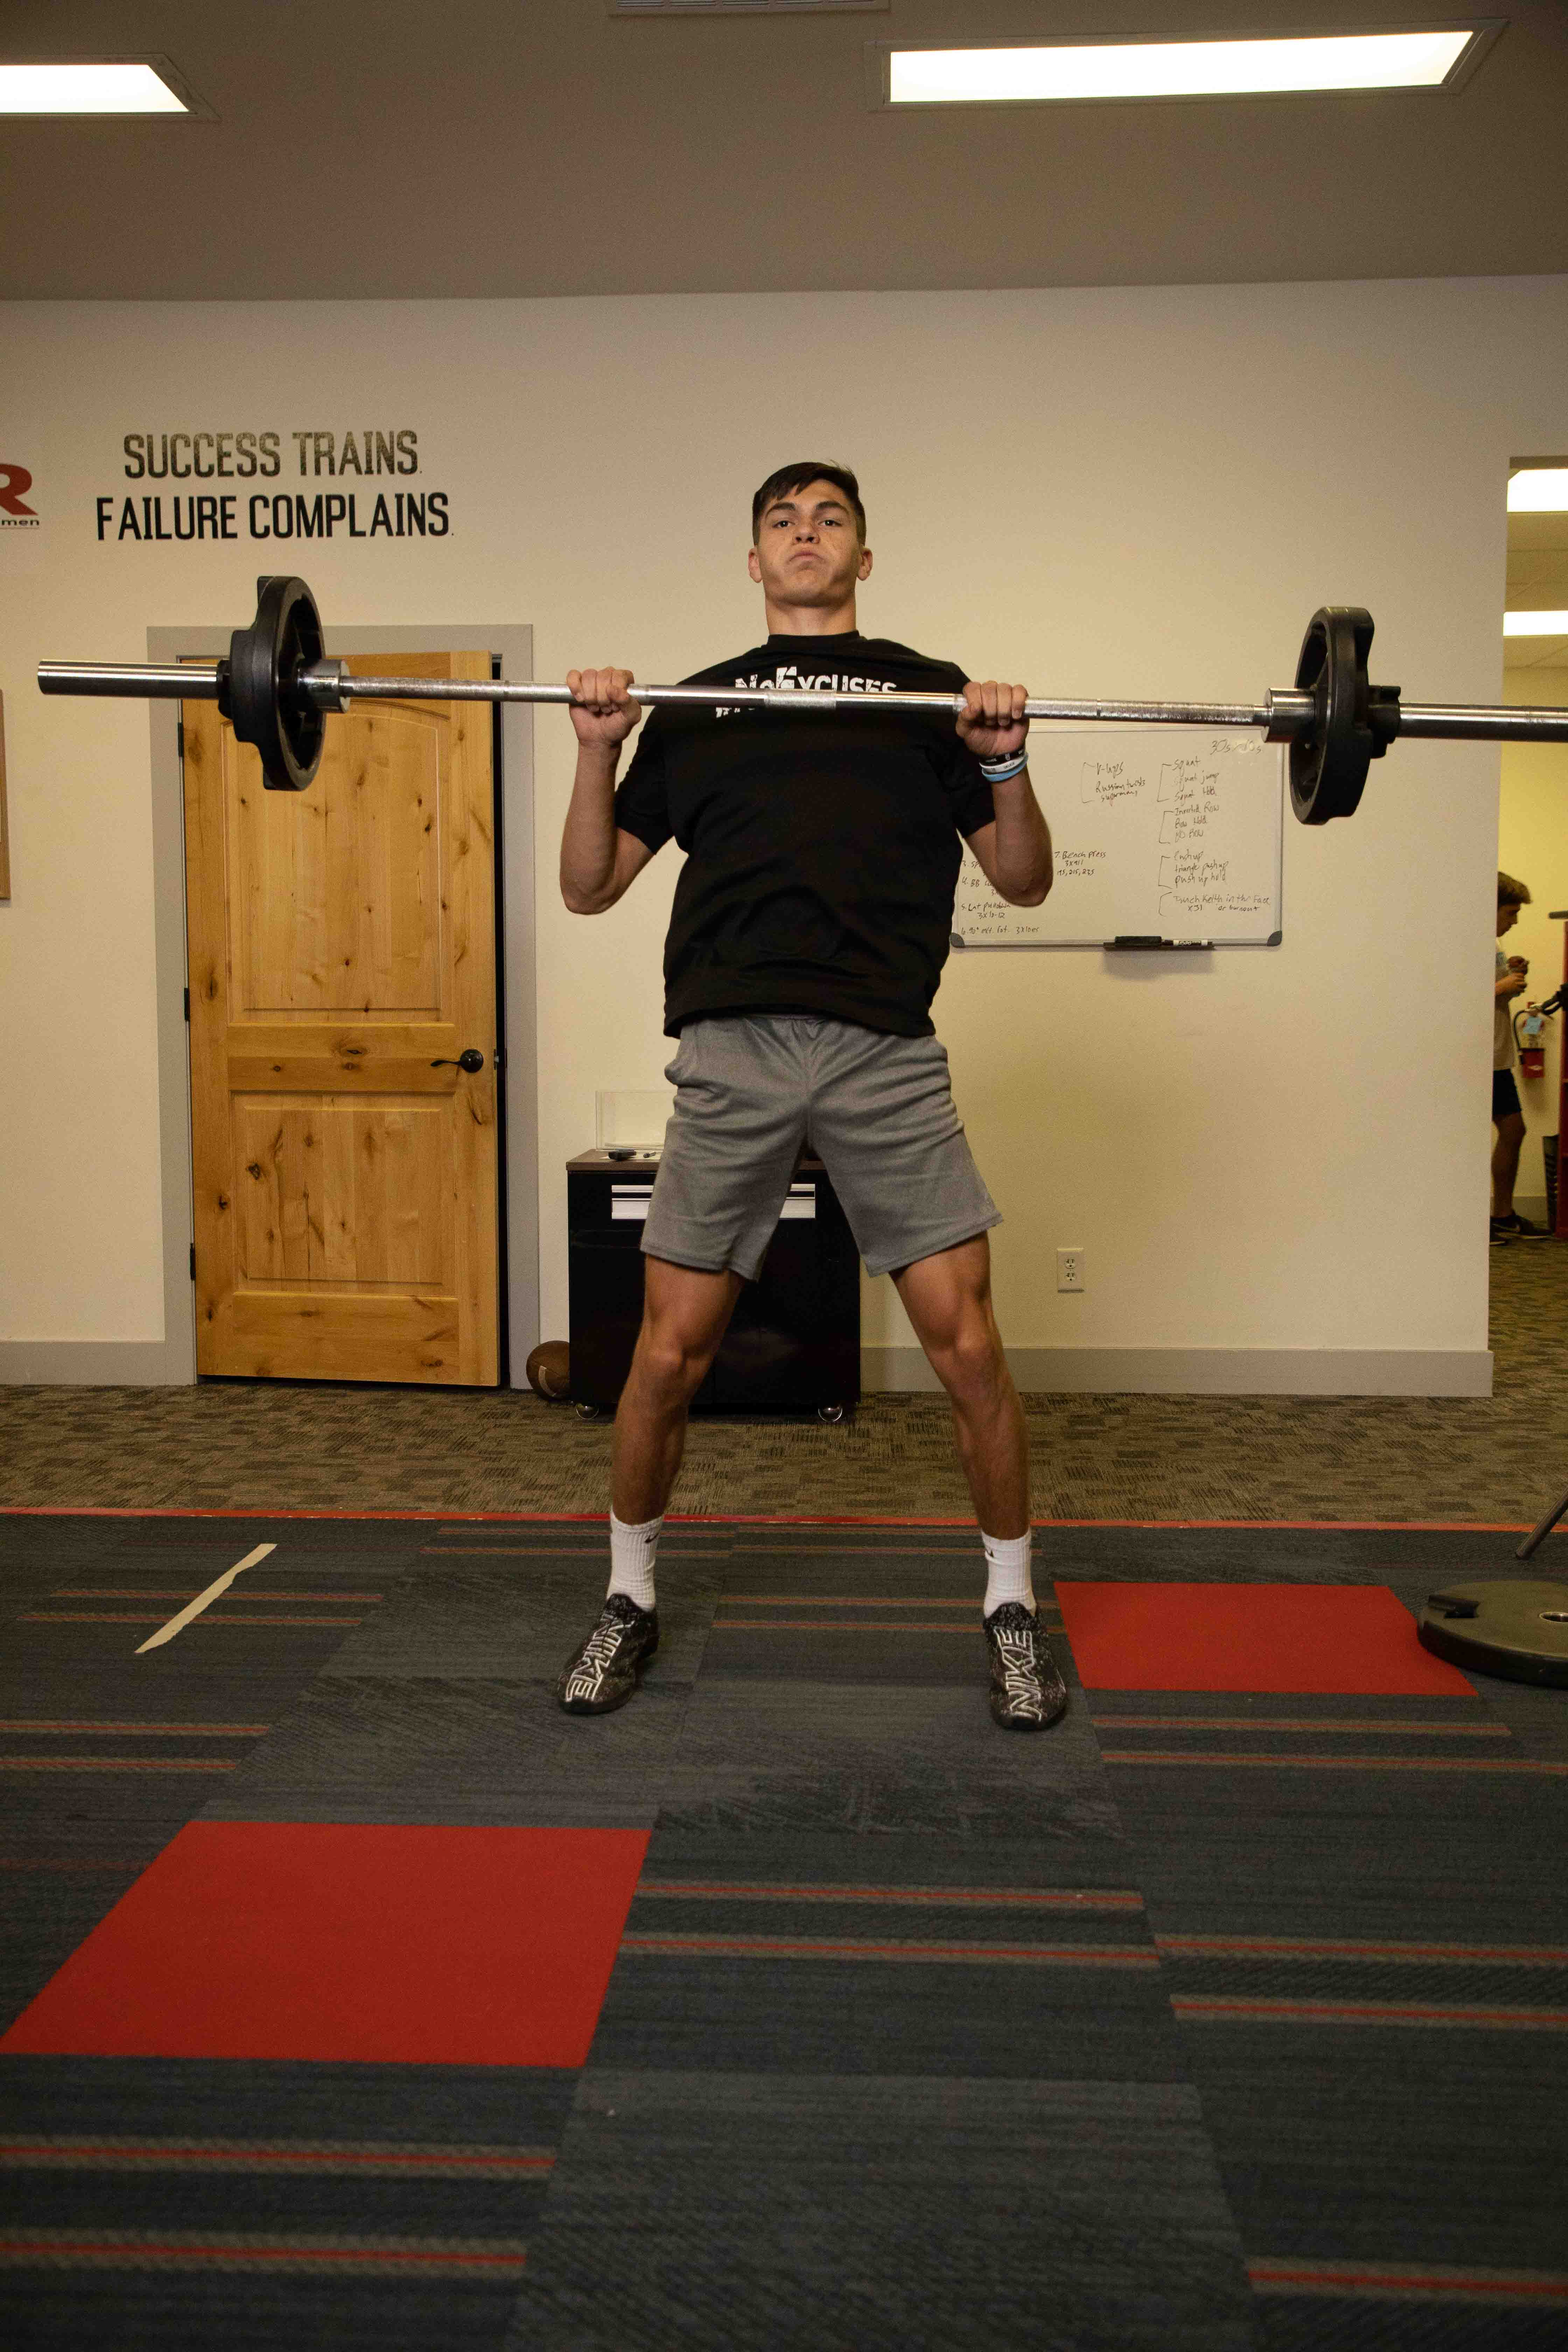 Tall boy mid-exercise with a barbell at chest height